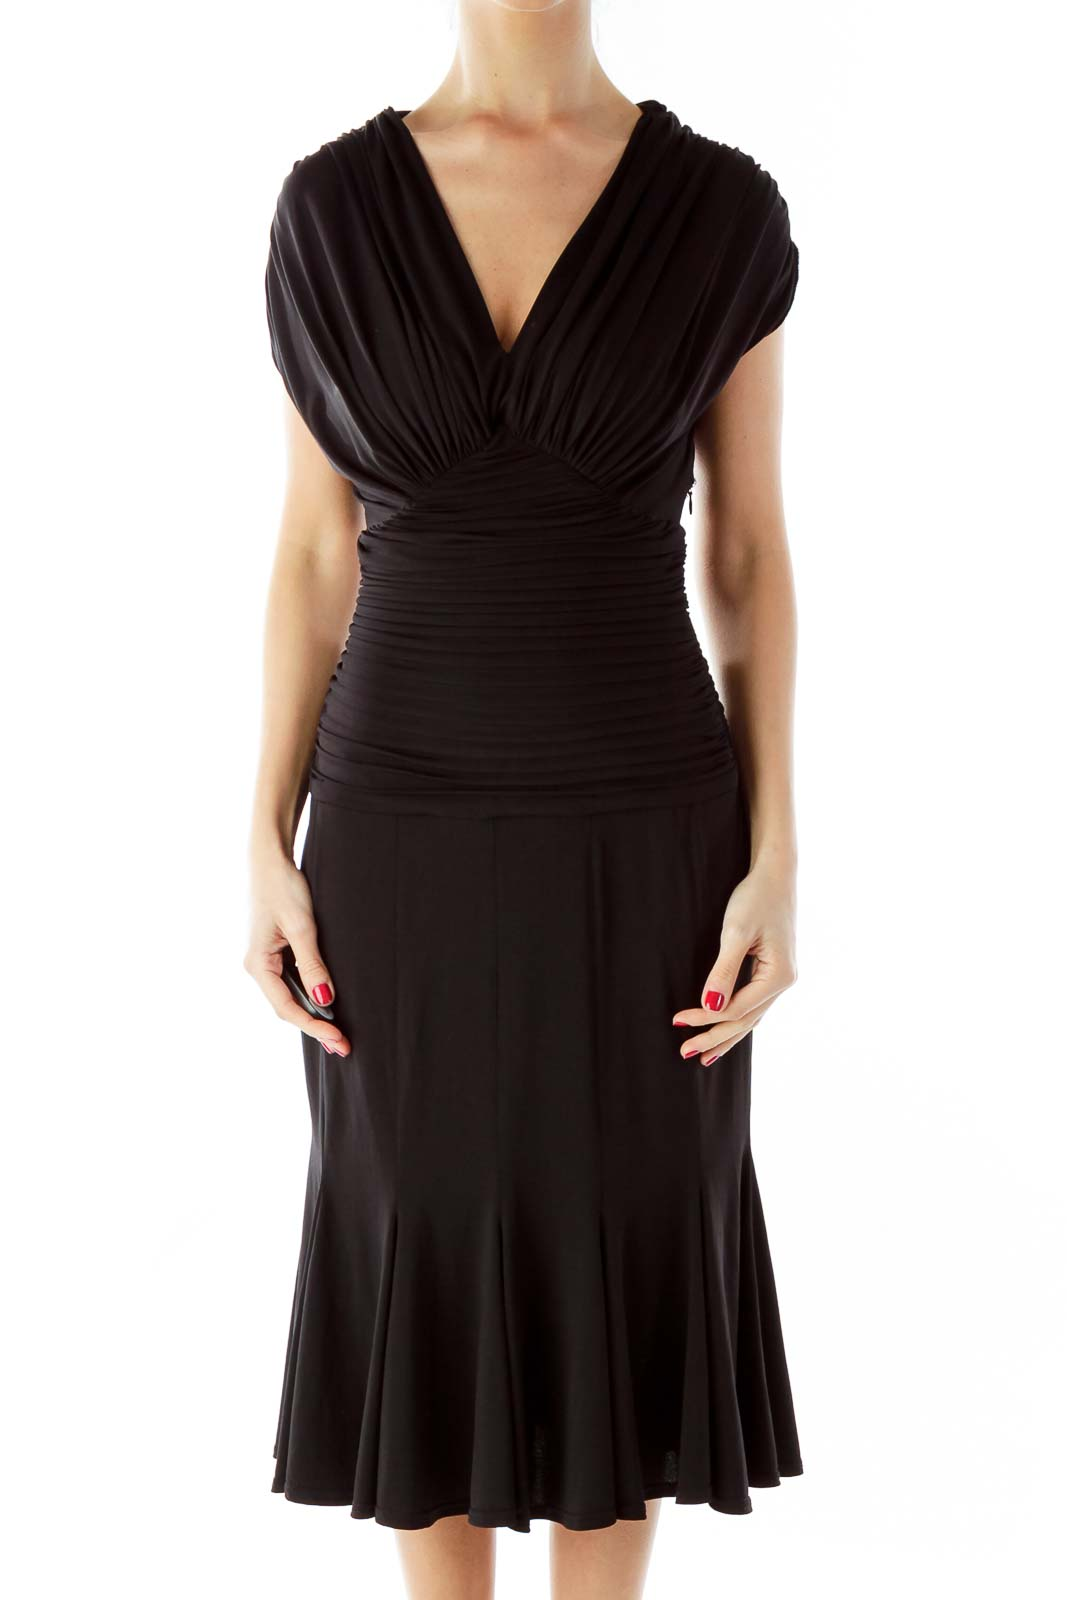 Black Scrunched Cocktail Dress